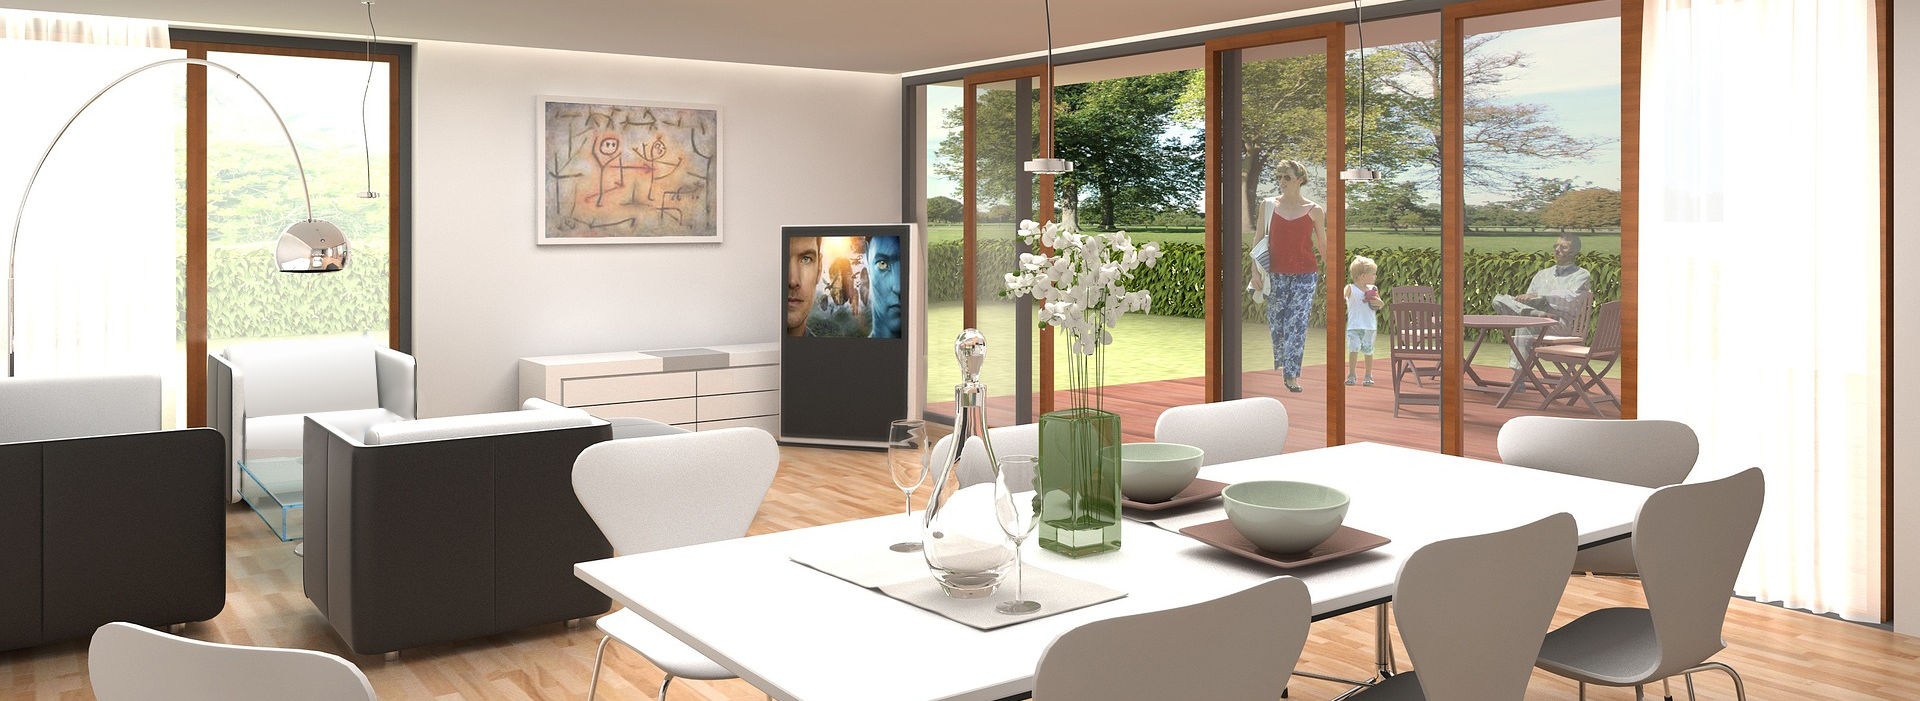 extension plans High Wycombe